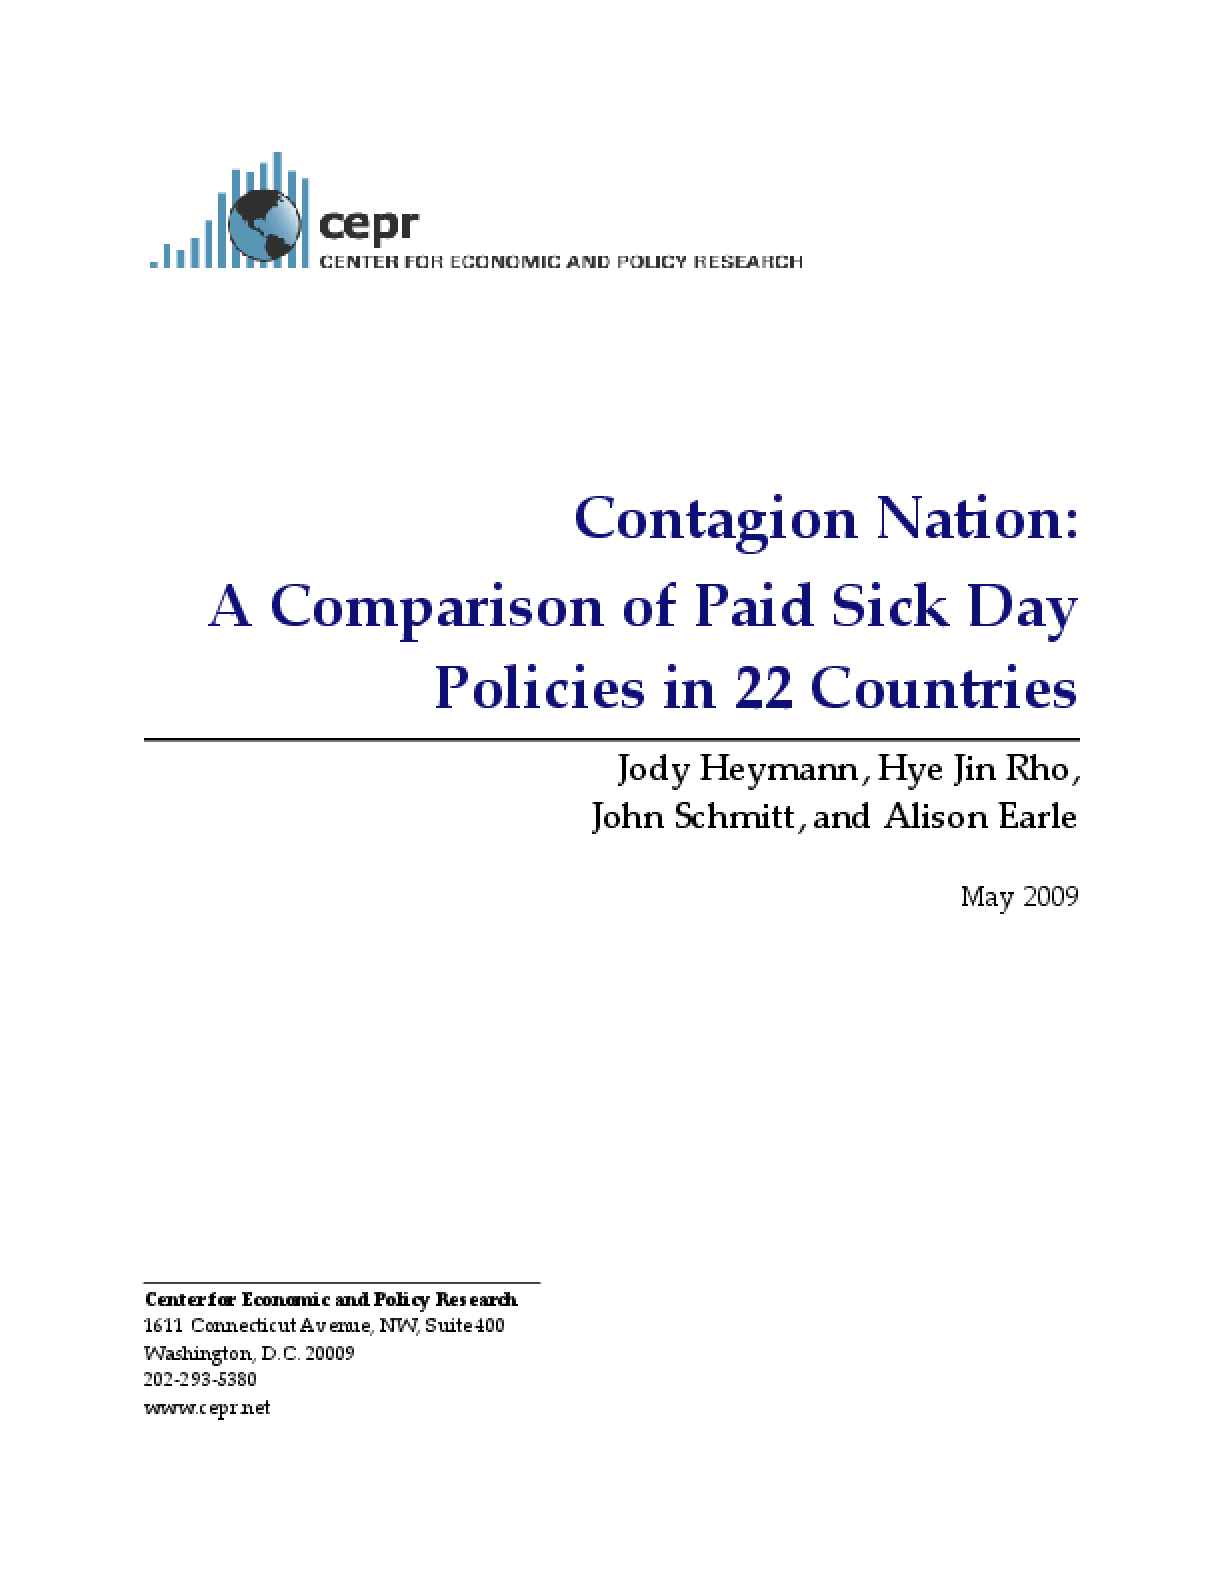 Contagion Nation: A Comparison of Paid Sick Day Policies in 22 Countries